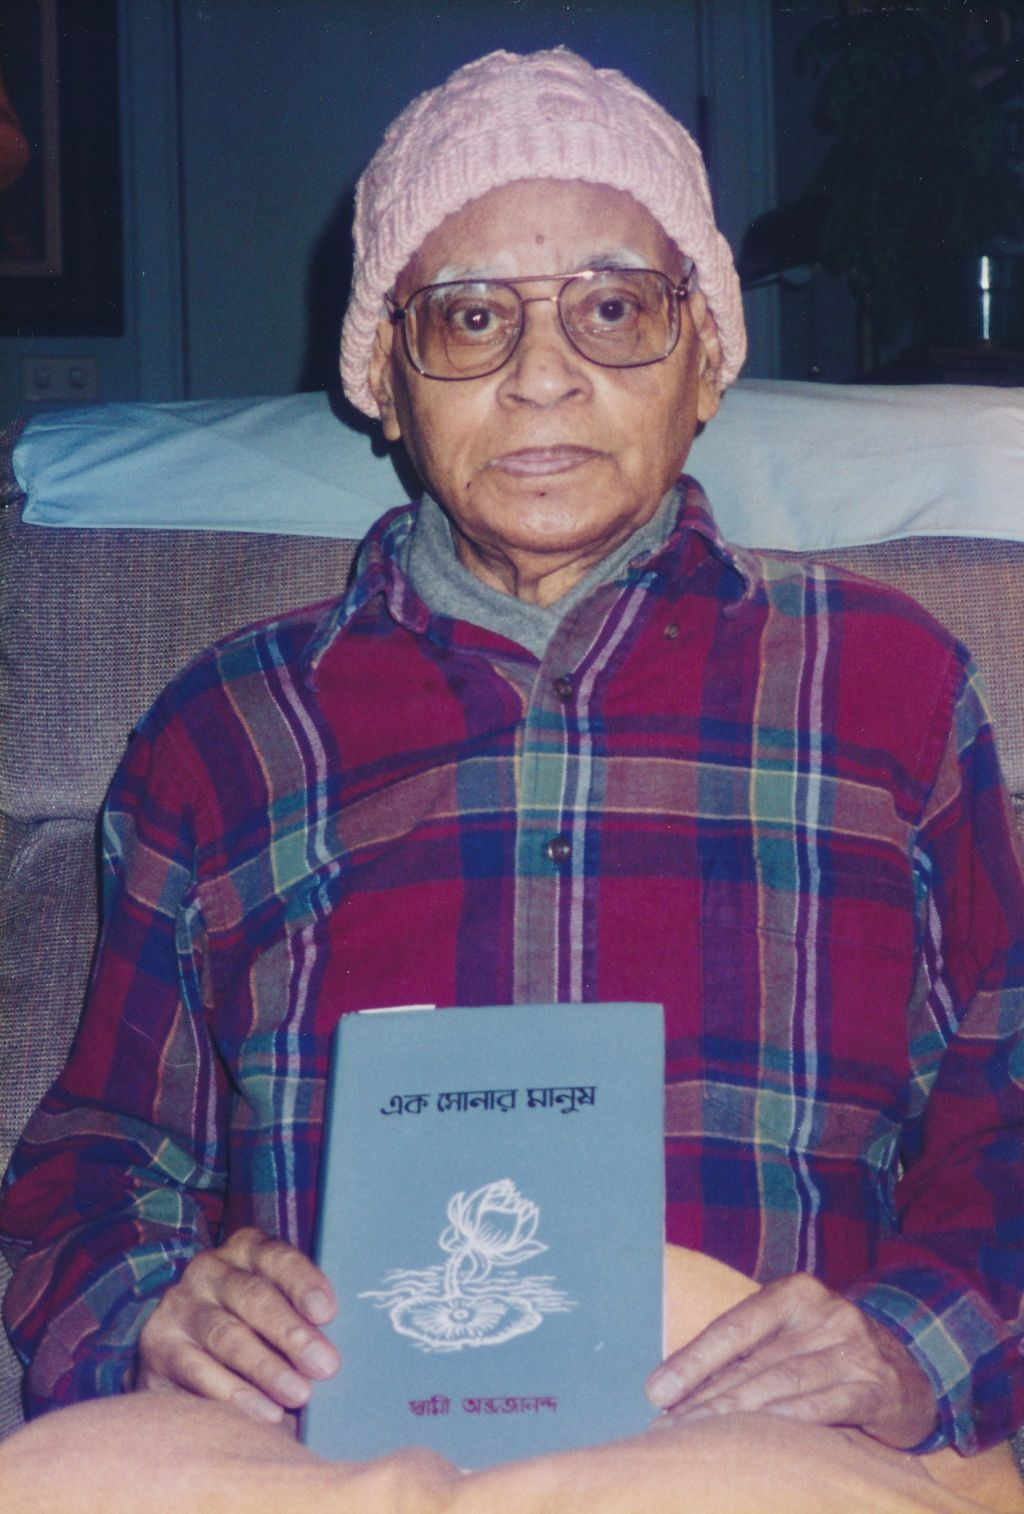 Swami Shraddhananda with a book in hand